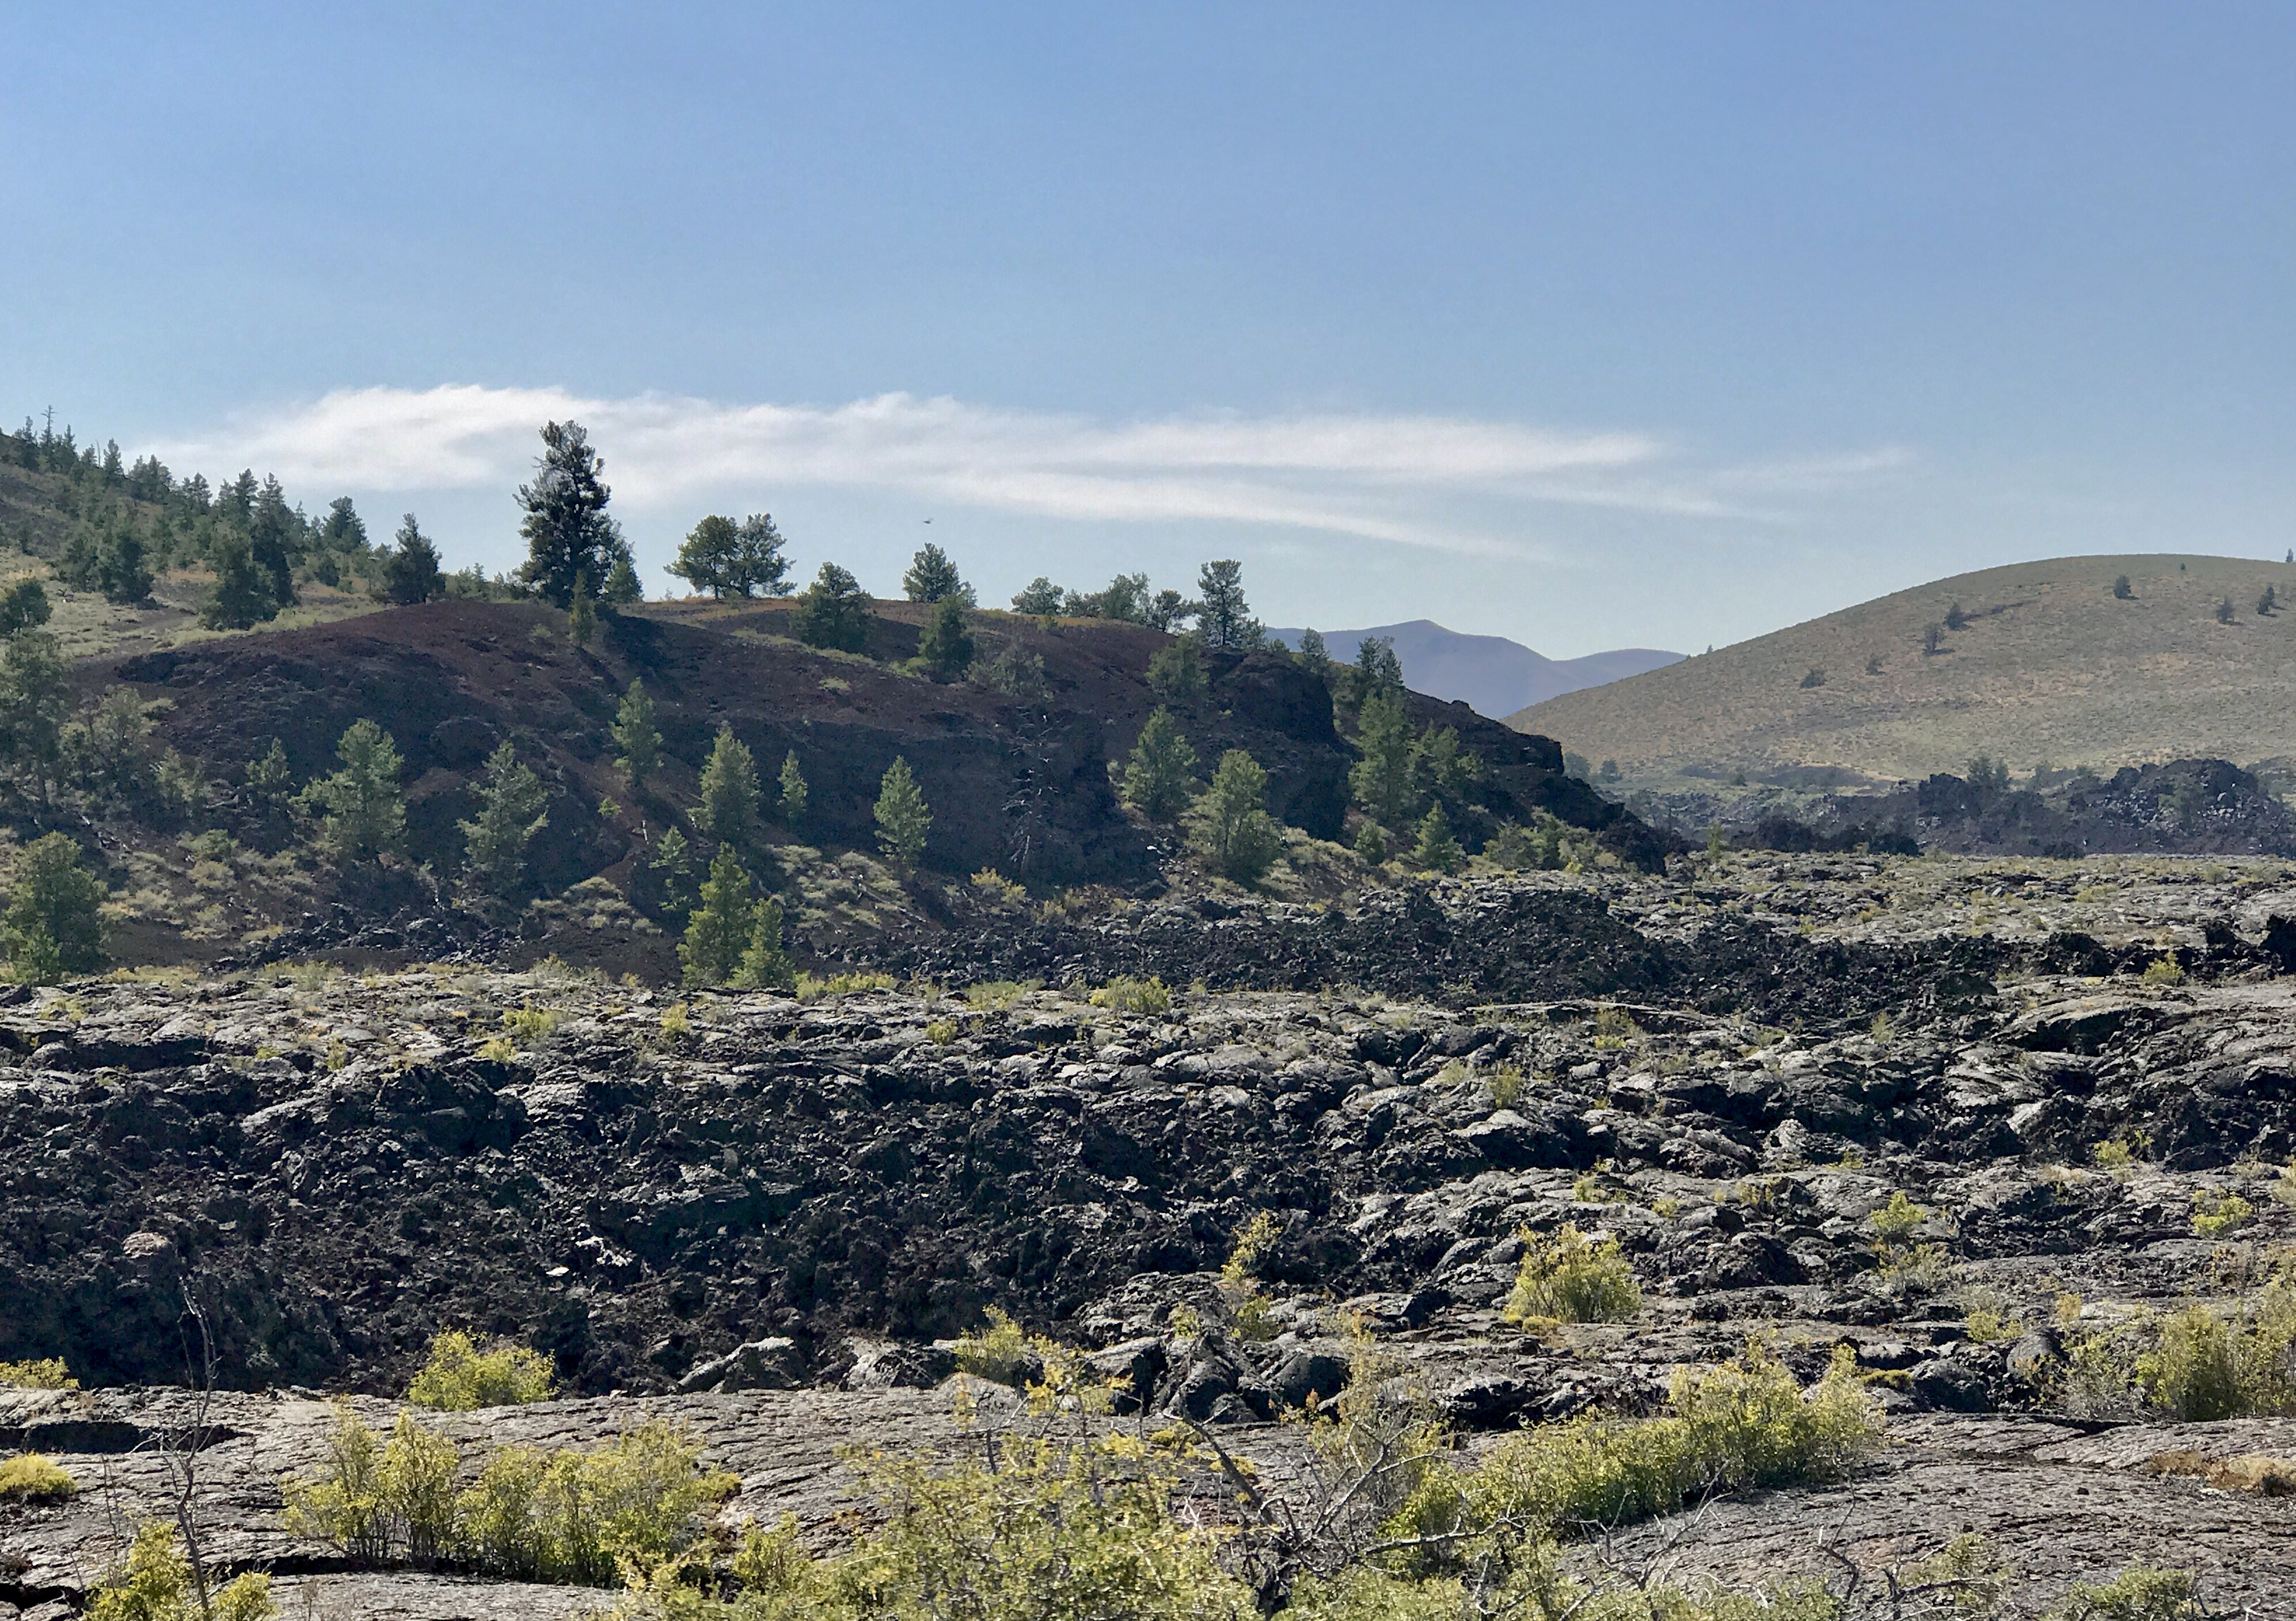 Ancient lava forms broken ground in view of a forest on the horizon.